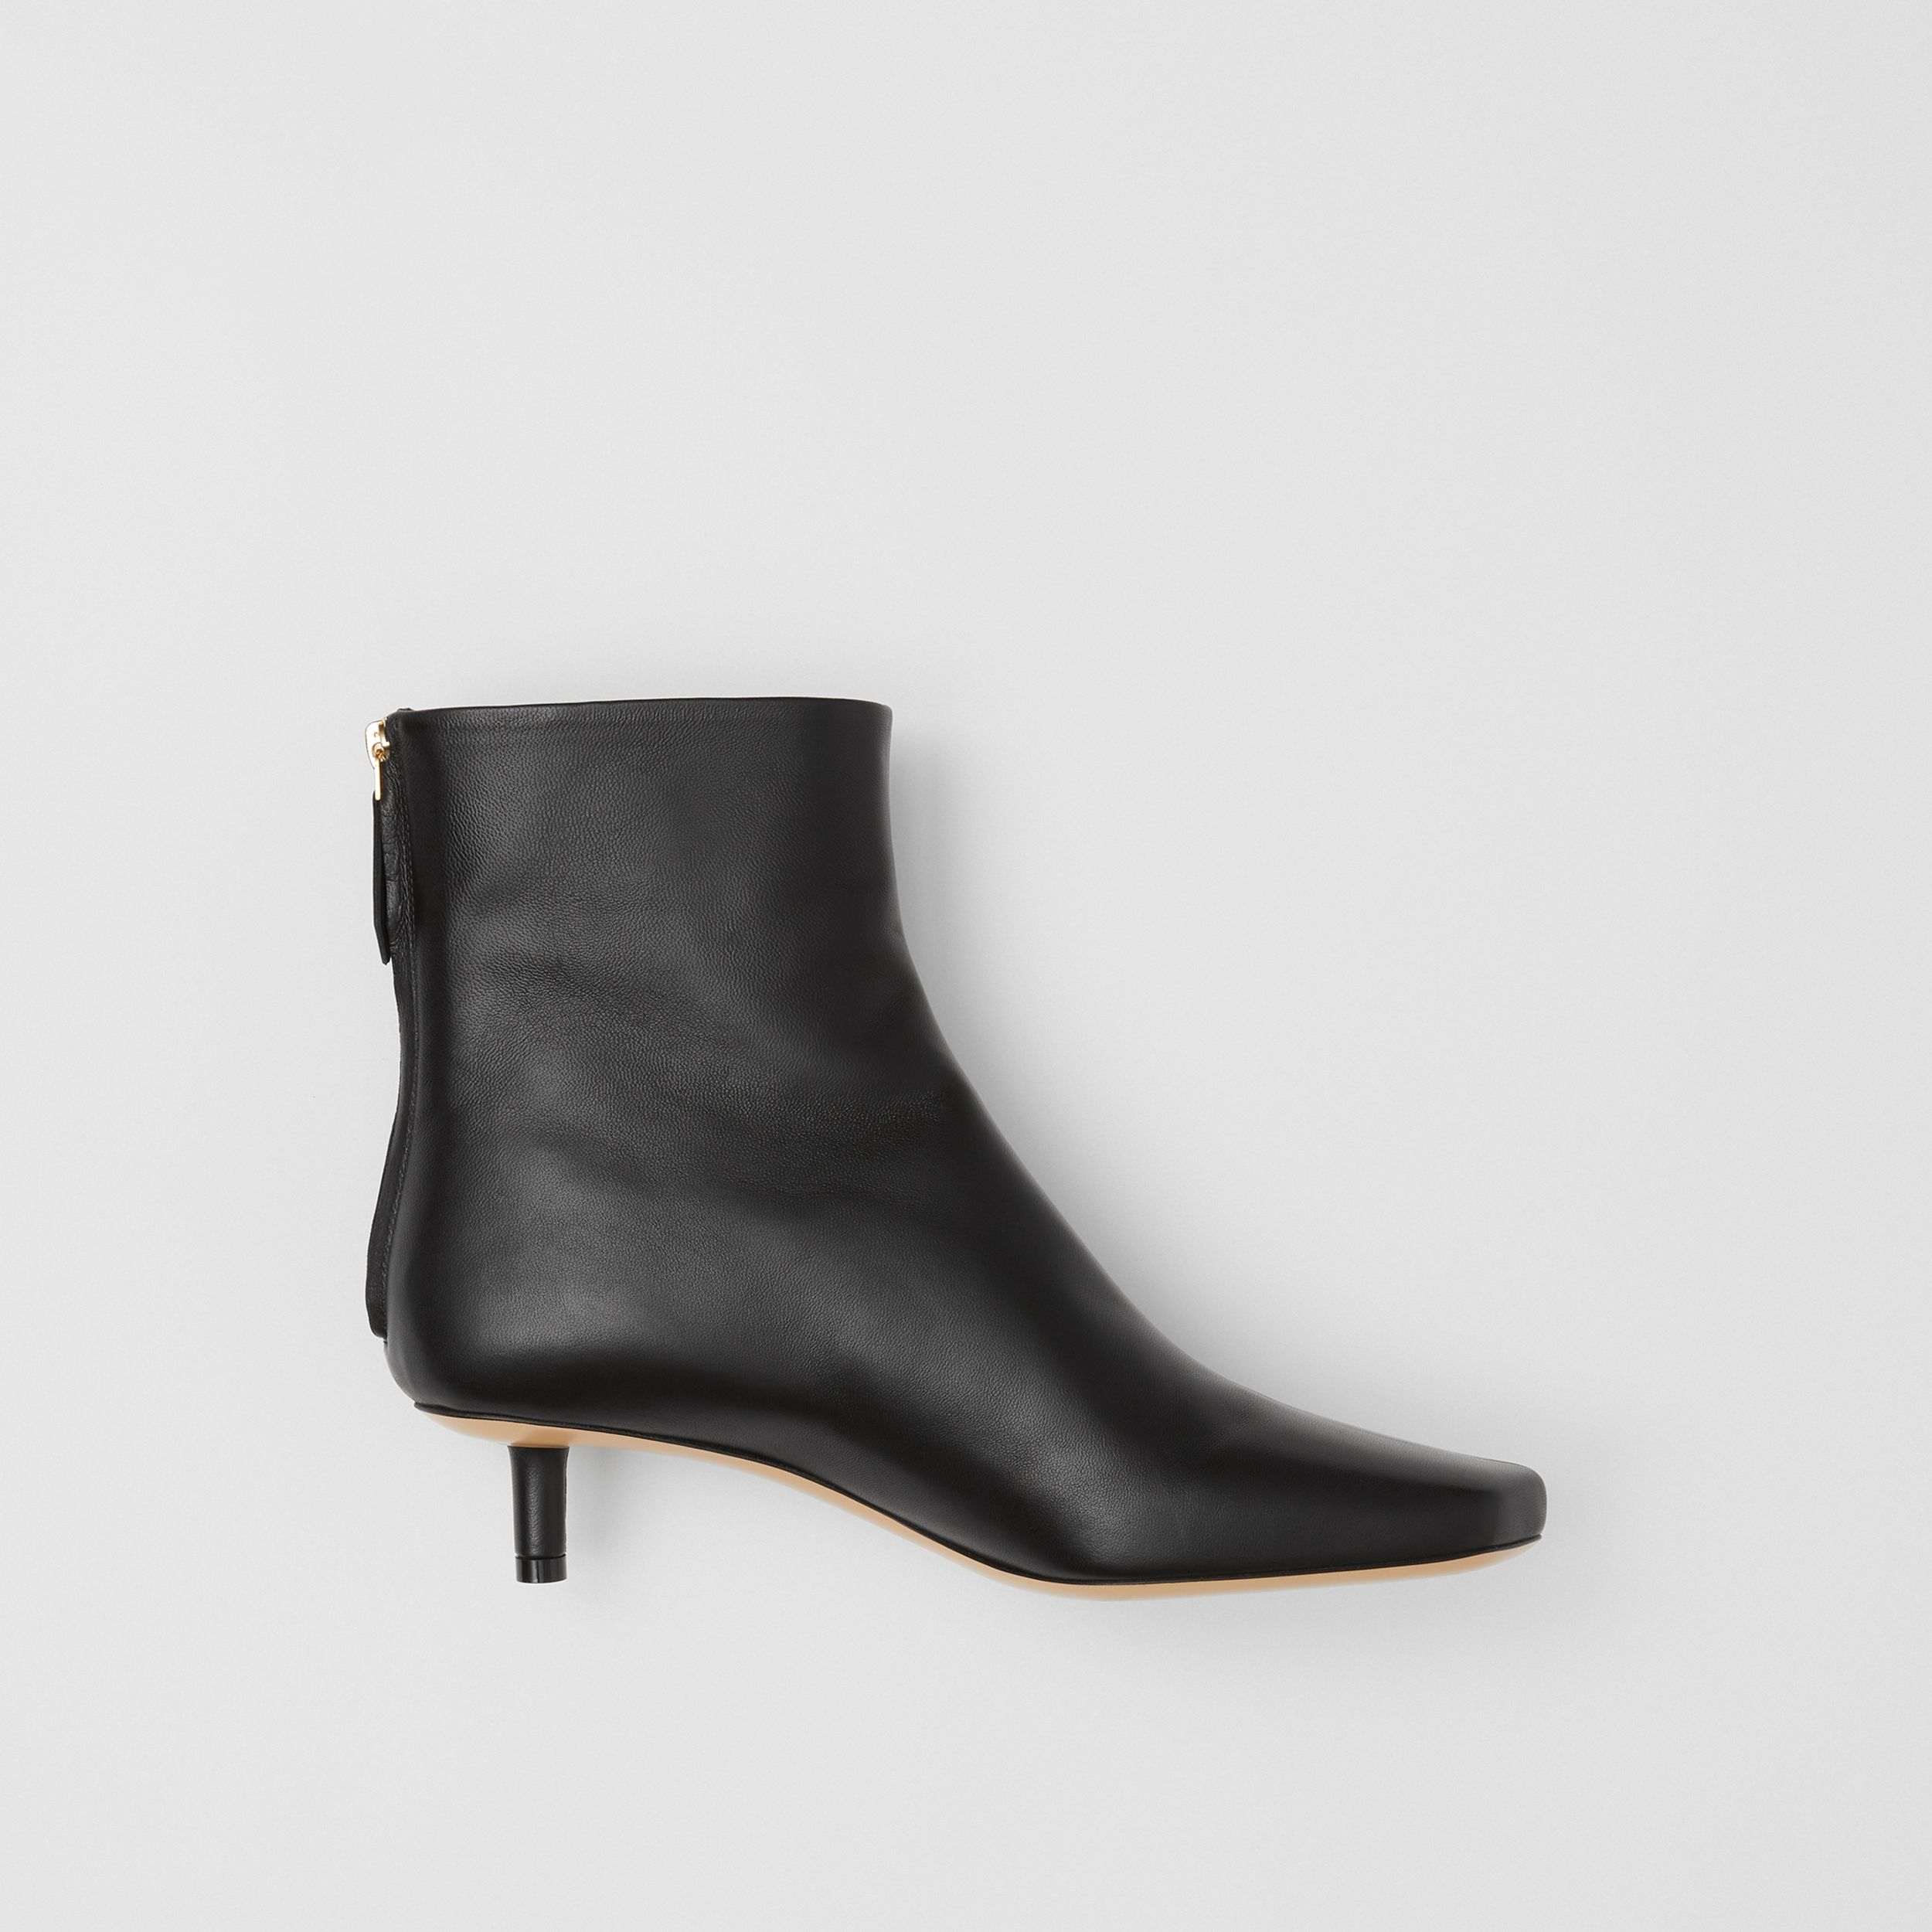 Lambskin Sculptural Kitten-heel Ankle Boots in Black - Women | Burberry - 1